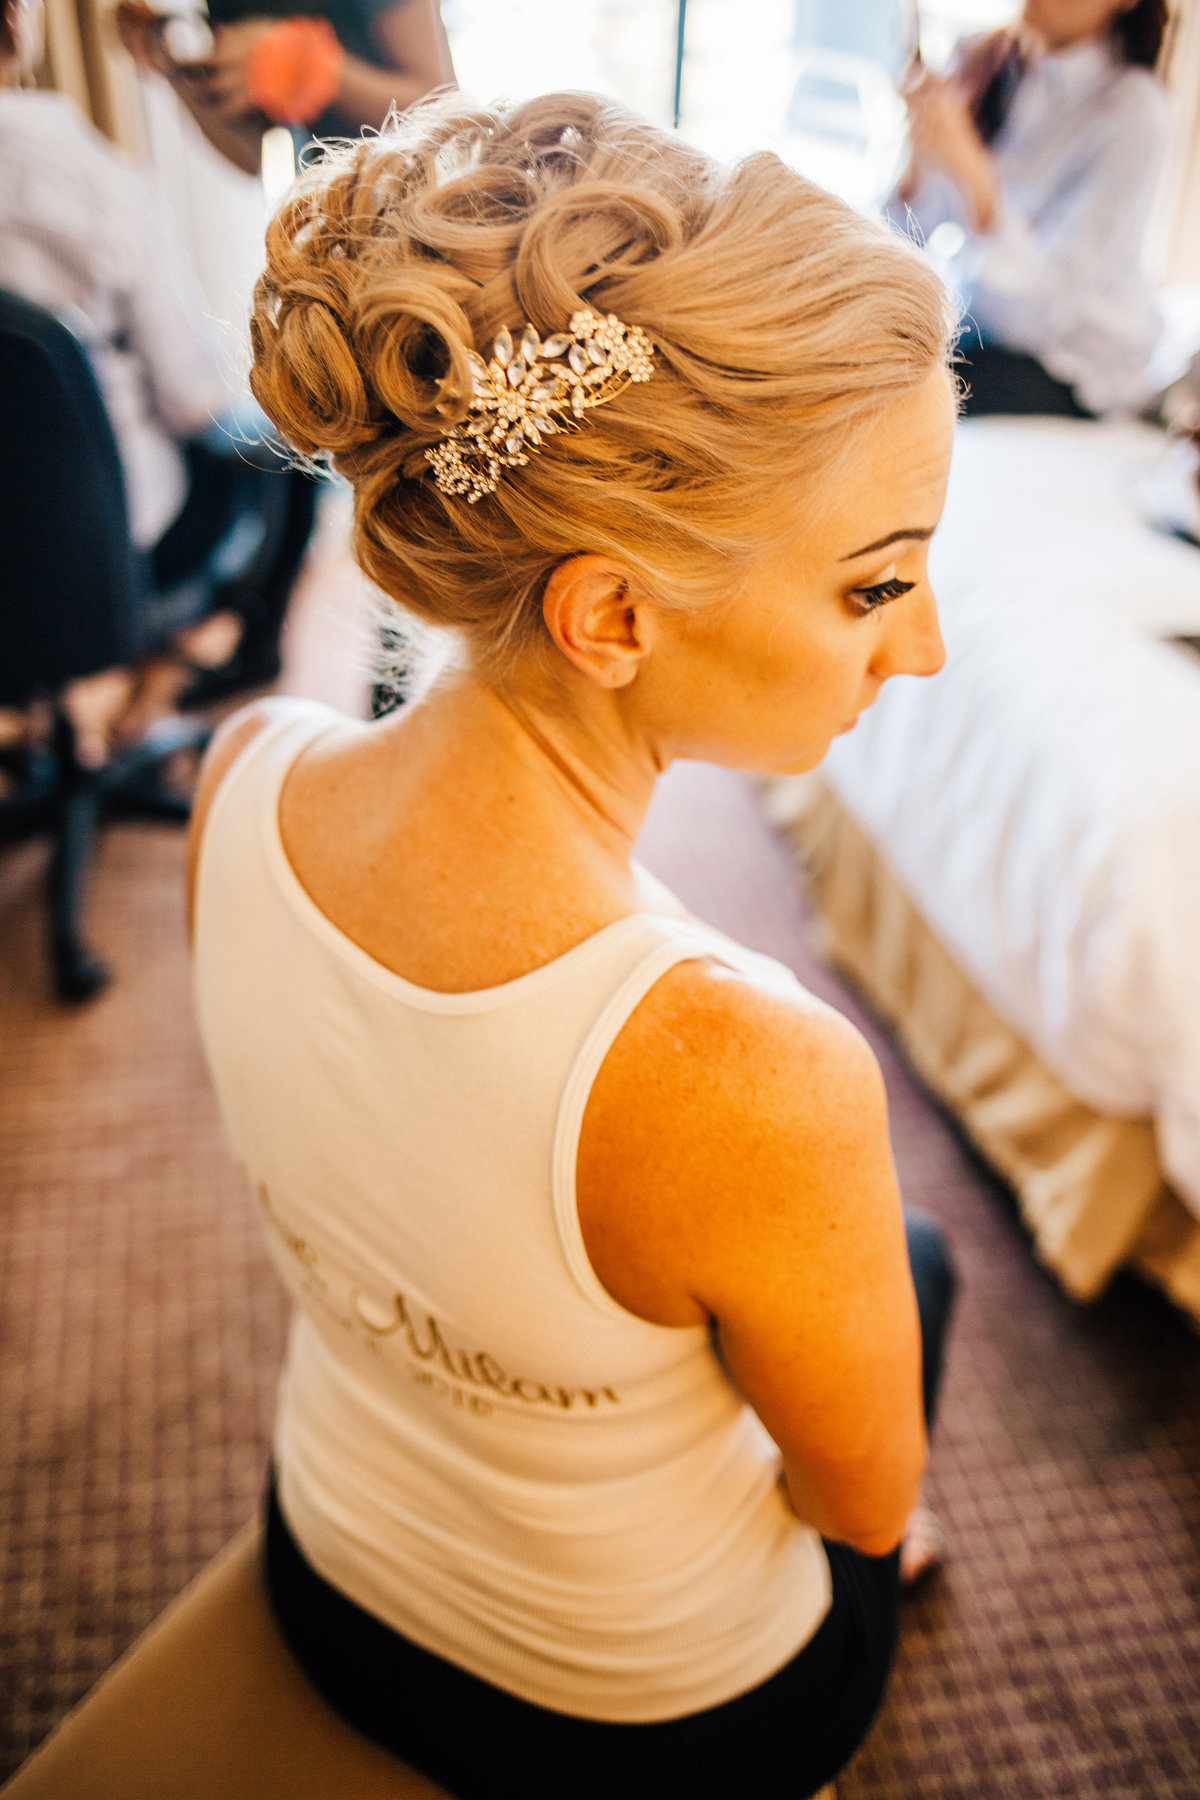 Kimberly_Hoyle_Photography_Milam_The_Back_Center_Melbourne_Wedding-7